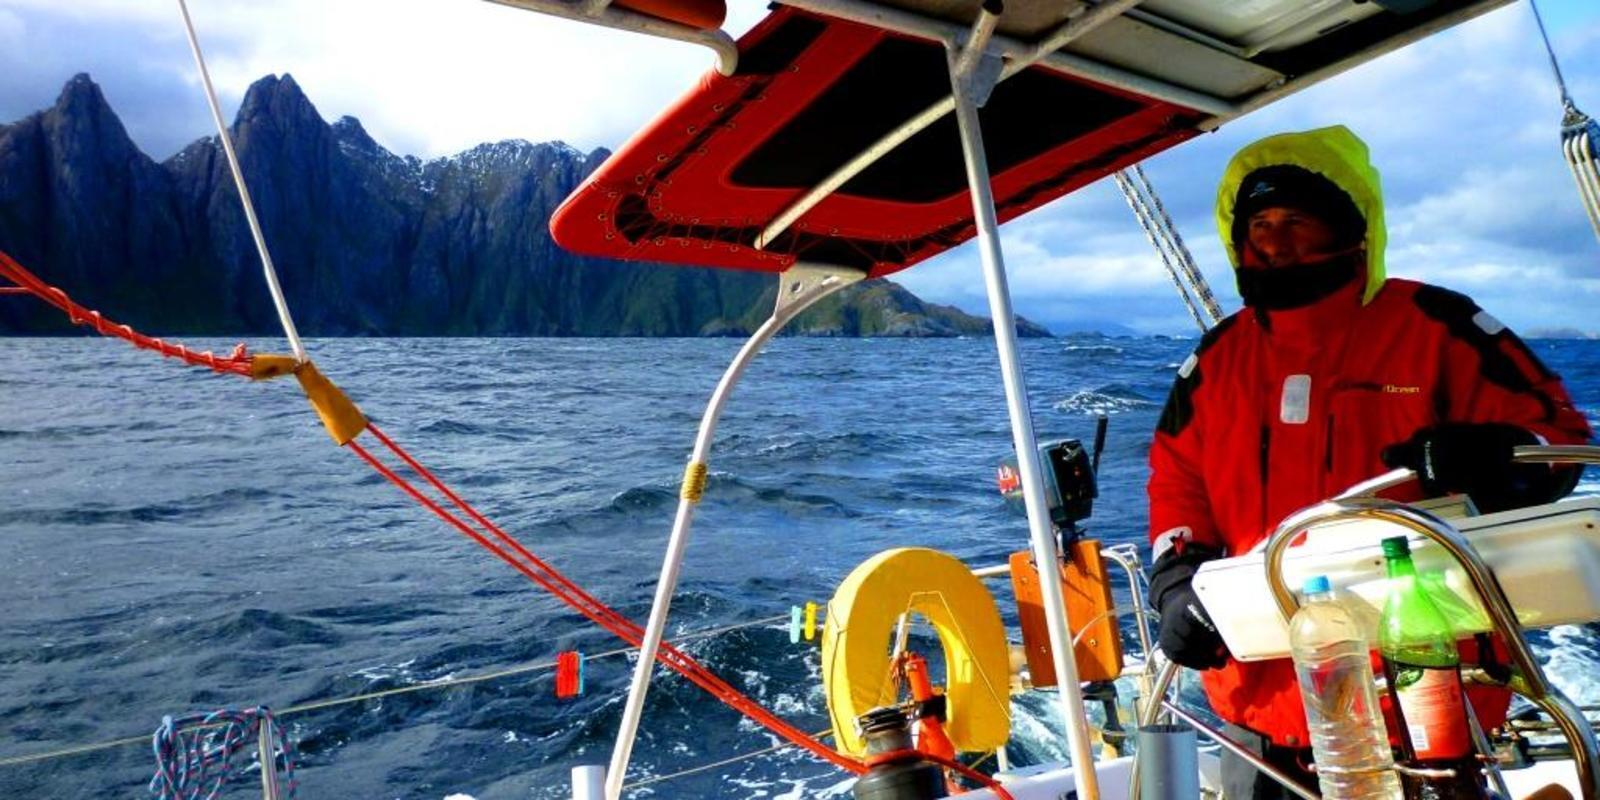 Cape Horn mythical cruise 7 days / 6 nights